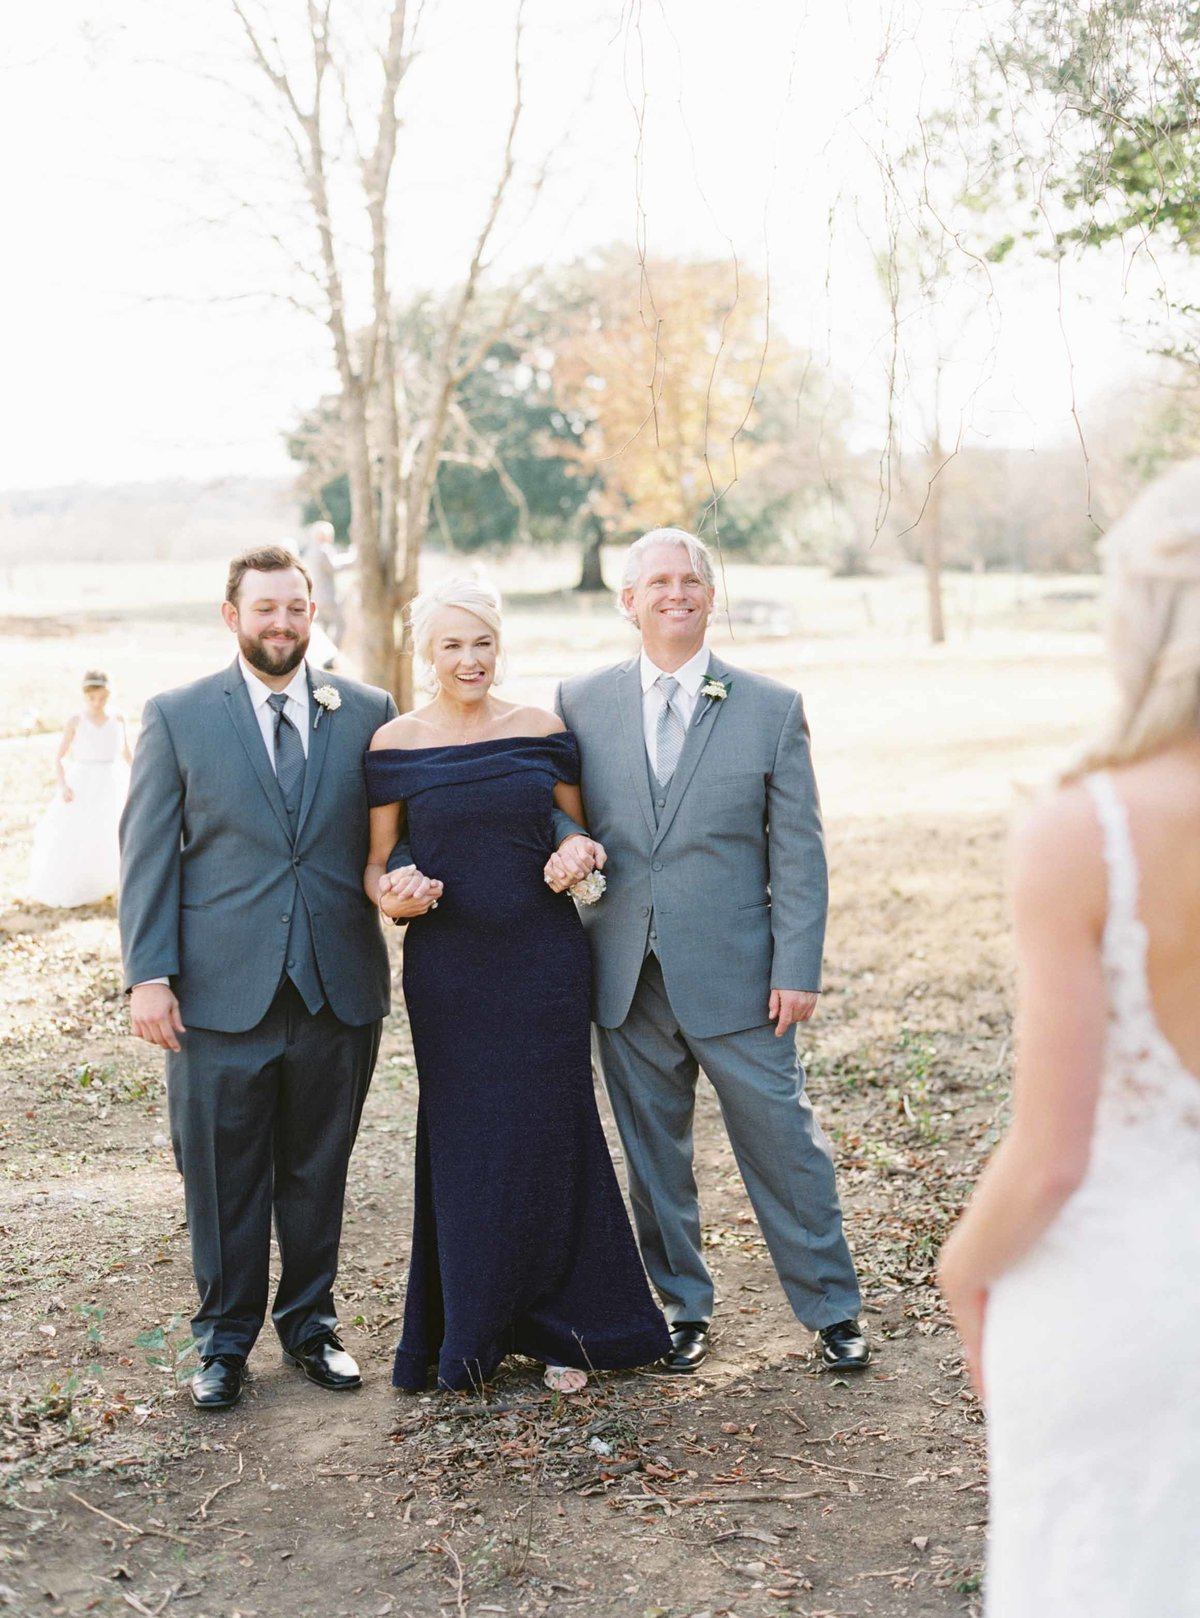 Angel_owens_photography_wedding28